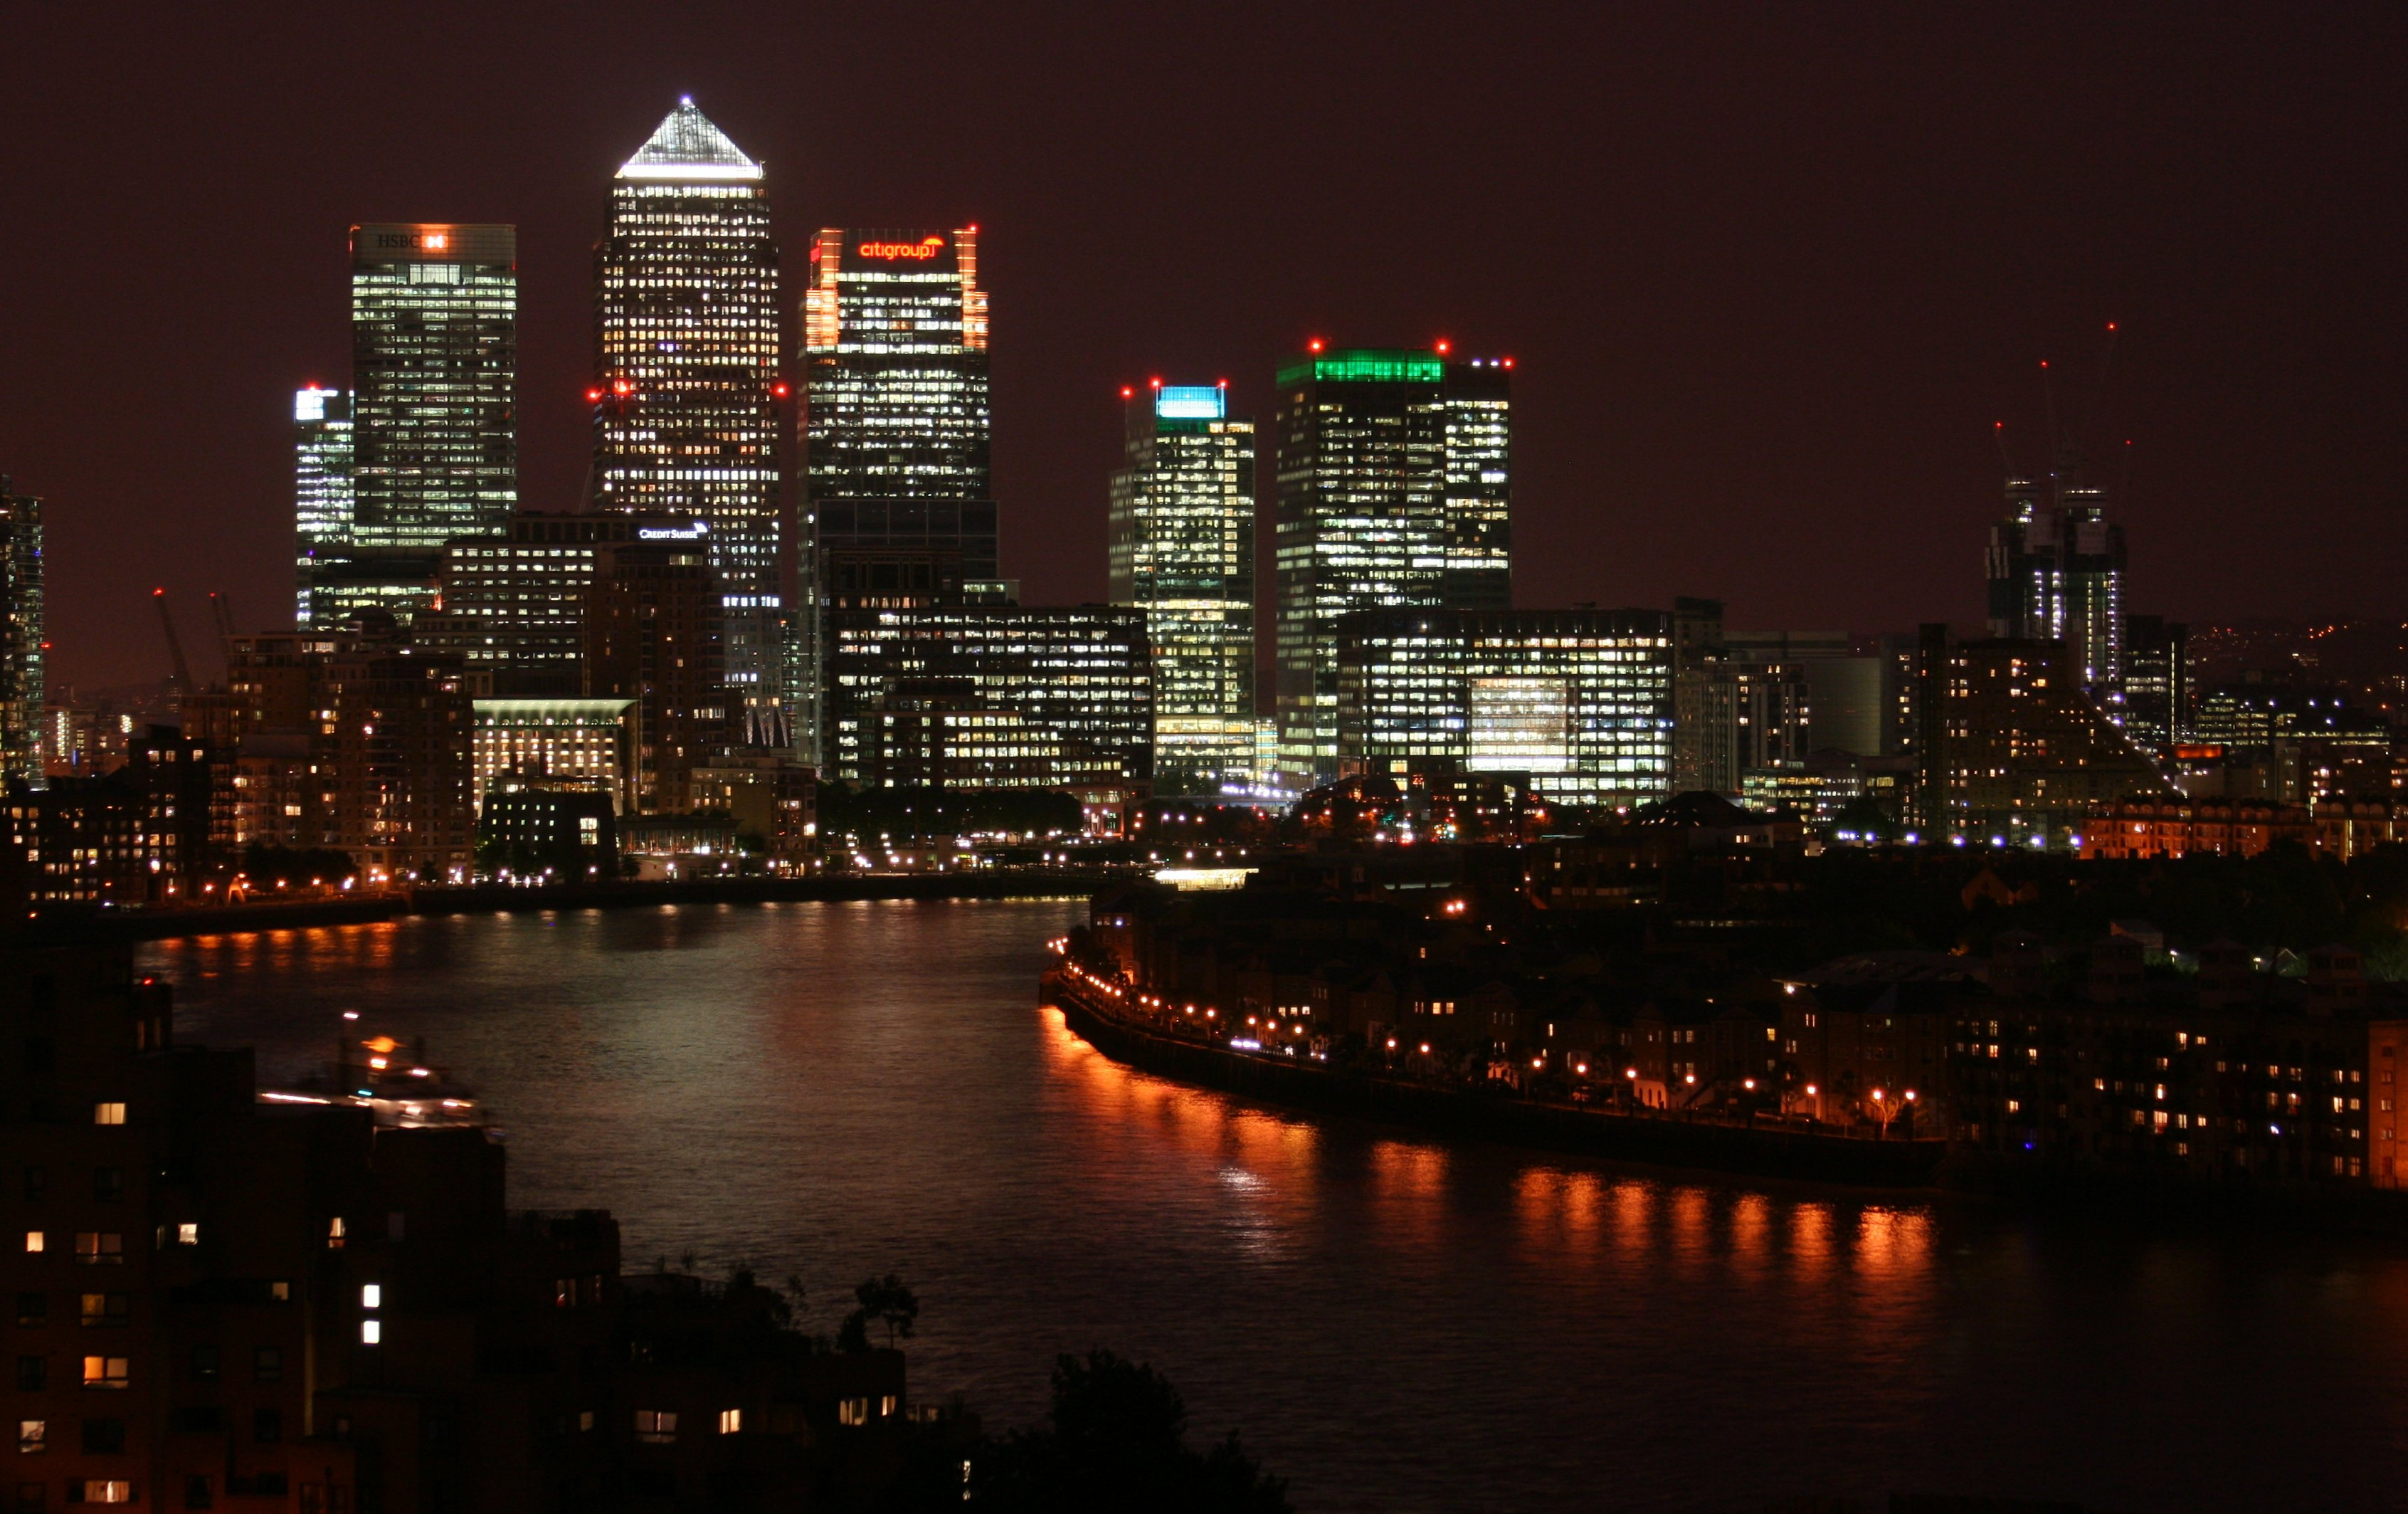 Canary_Wharf_at_night,_from_Shadwell.jpg